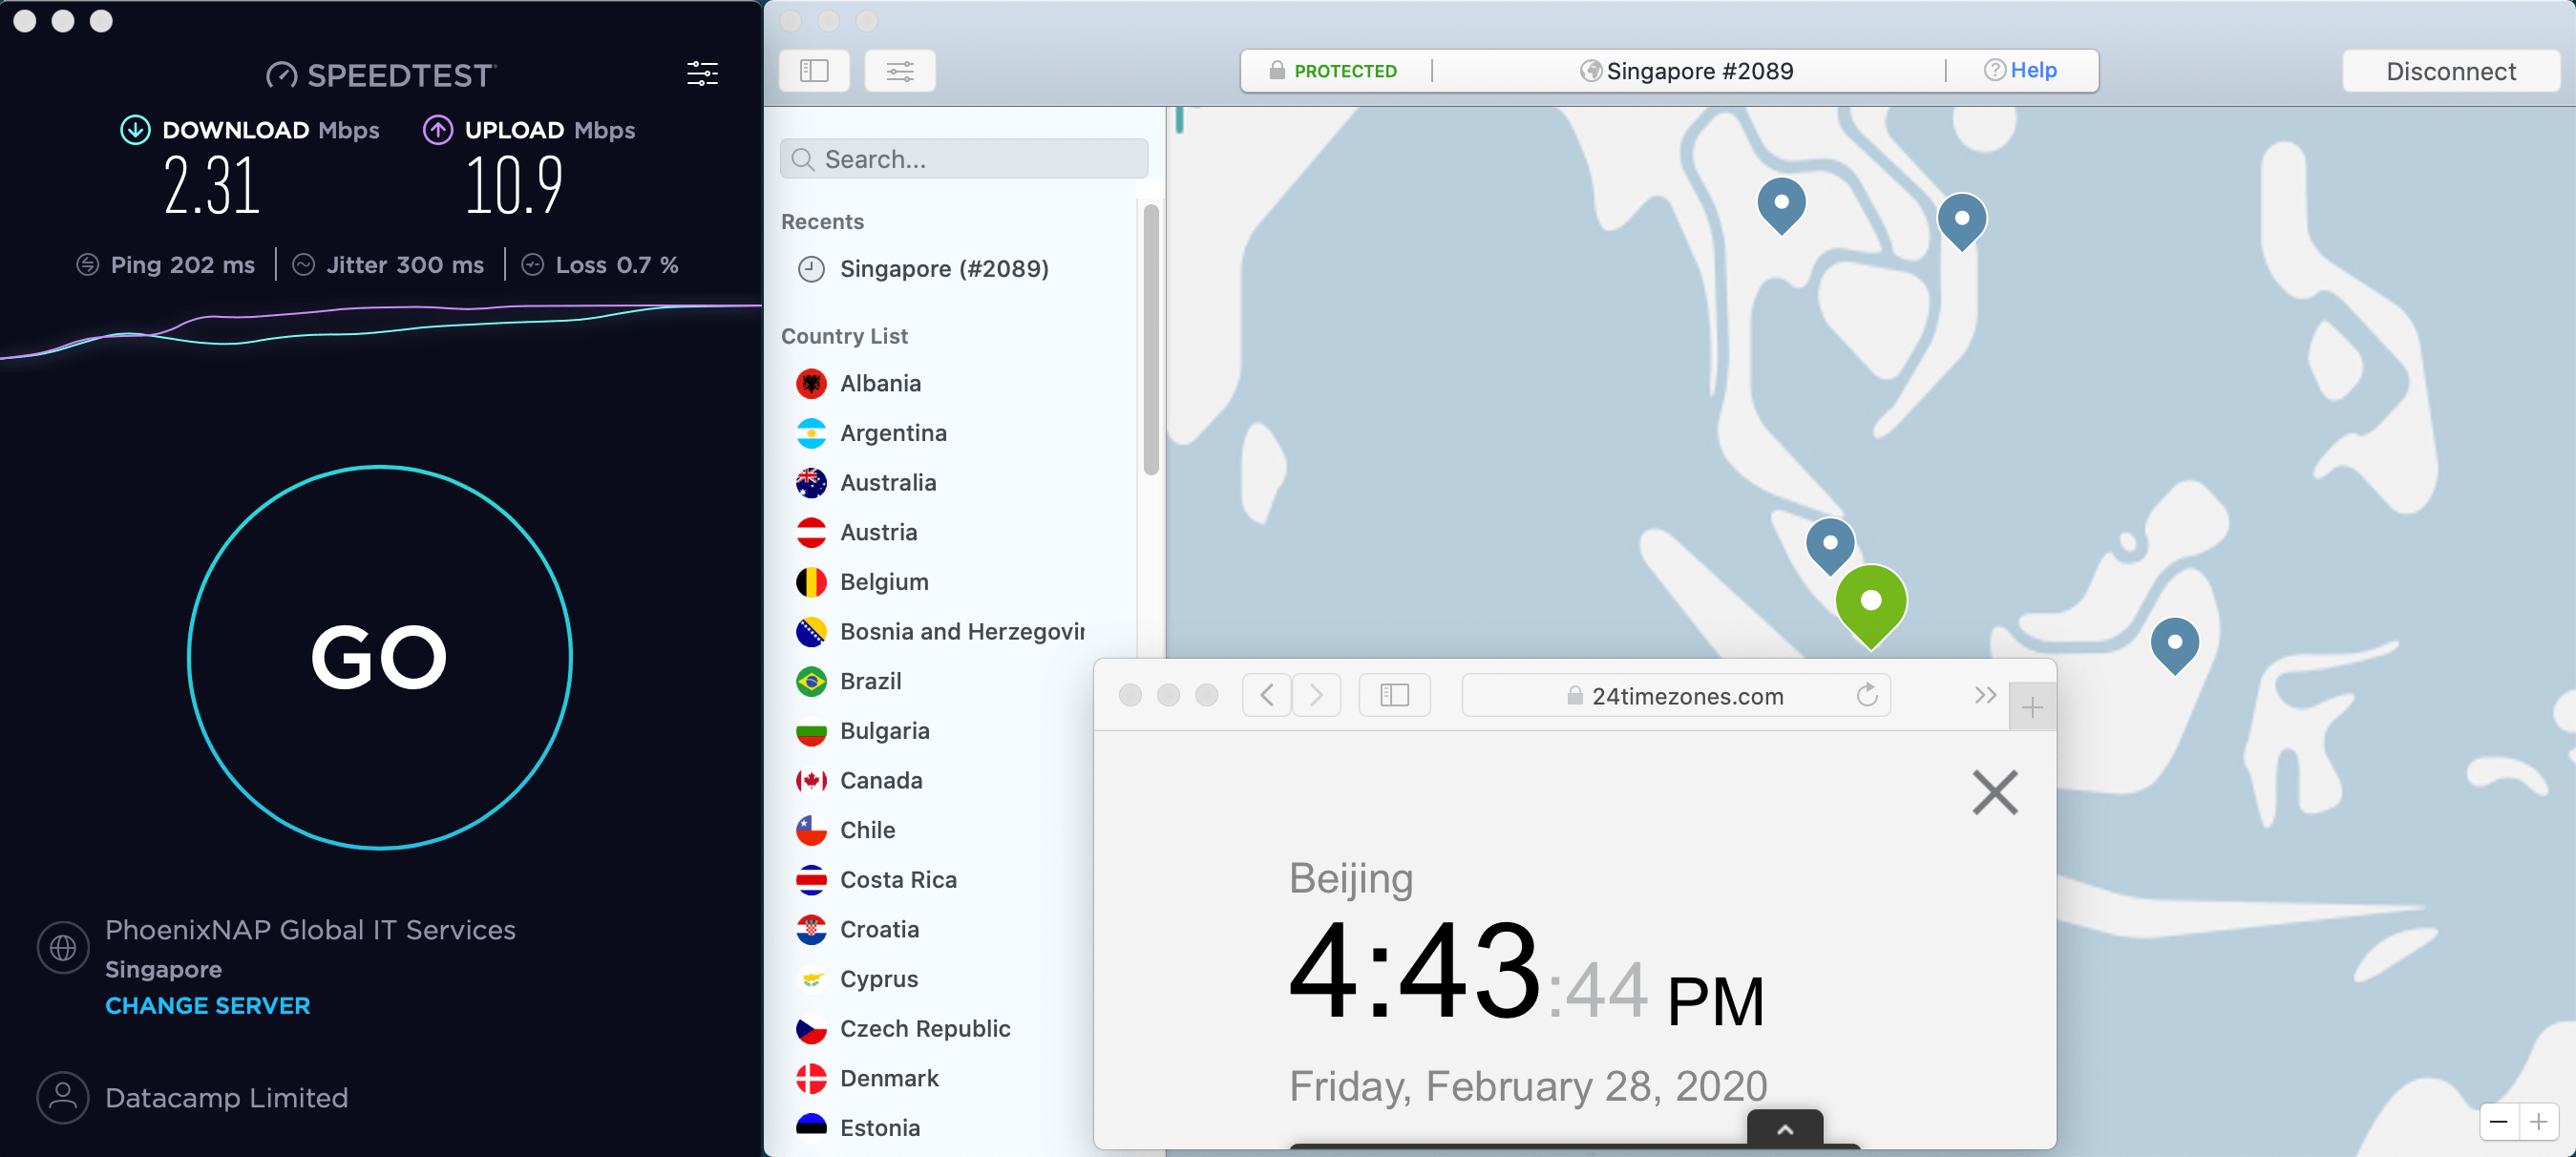 Macbook NordVPN Singapore #2089 中国VPN翻墙 科学上网 SpeedTest测速 2020-02-28 at 16.43.45